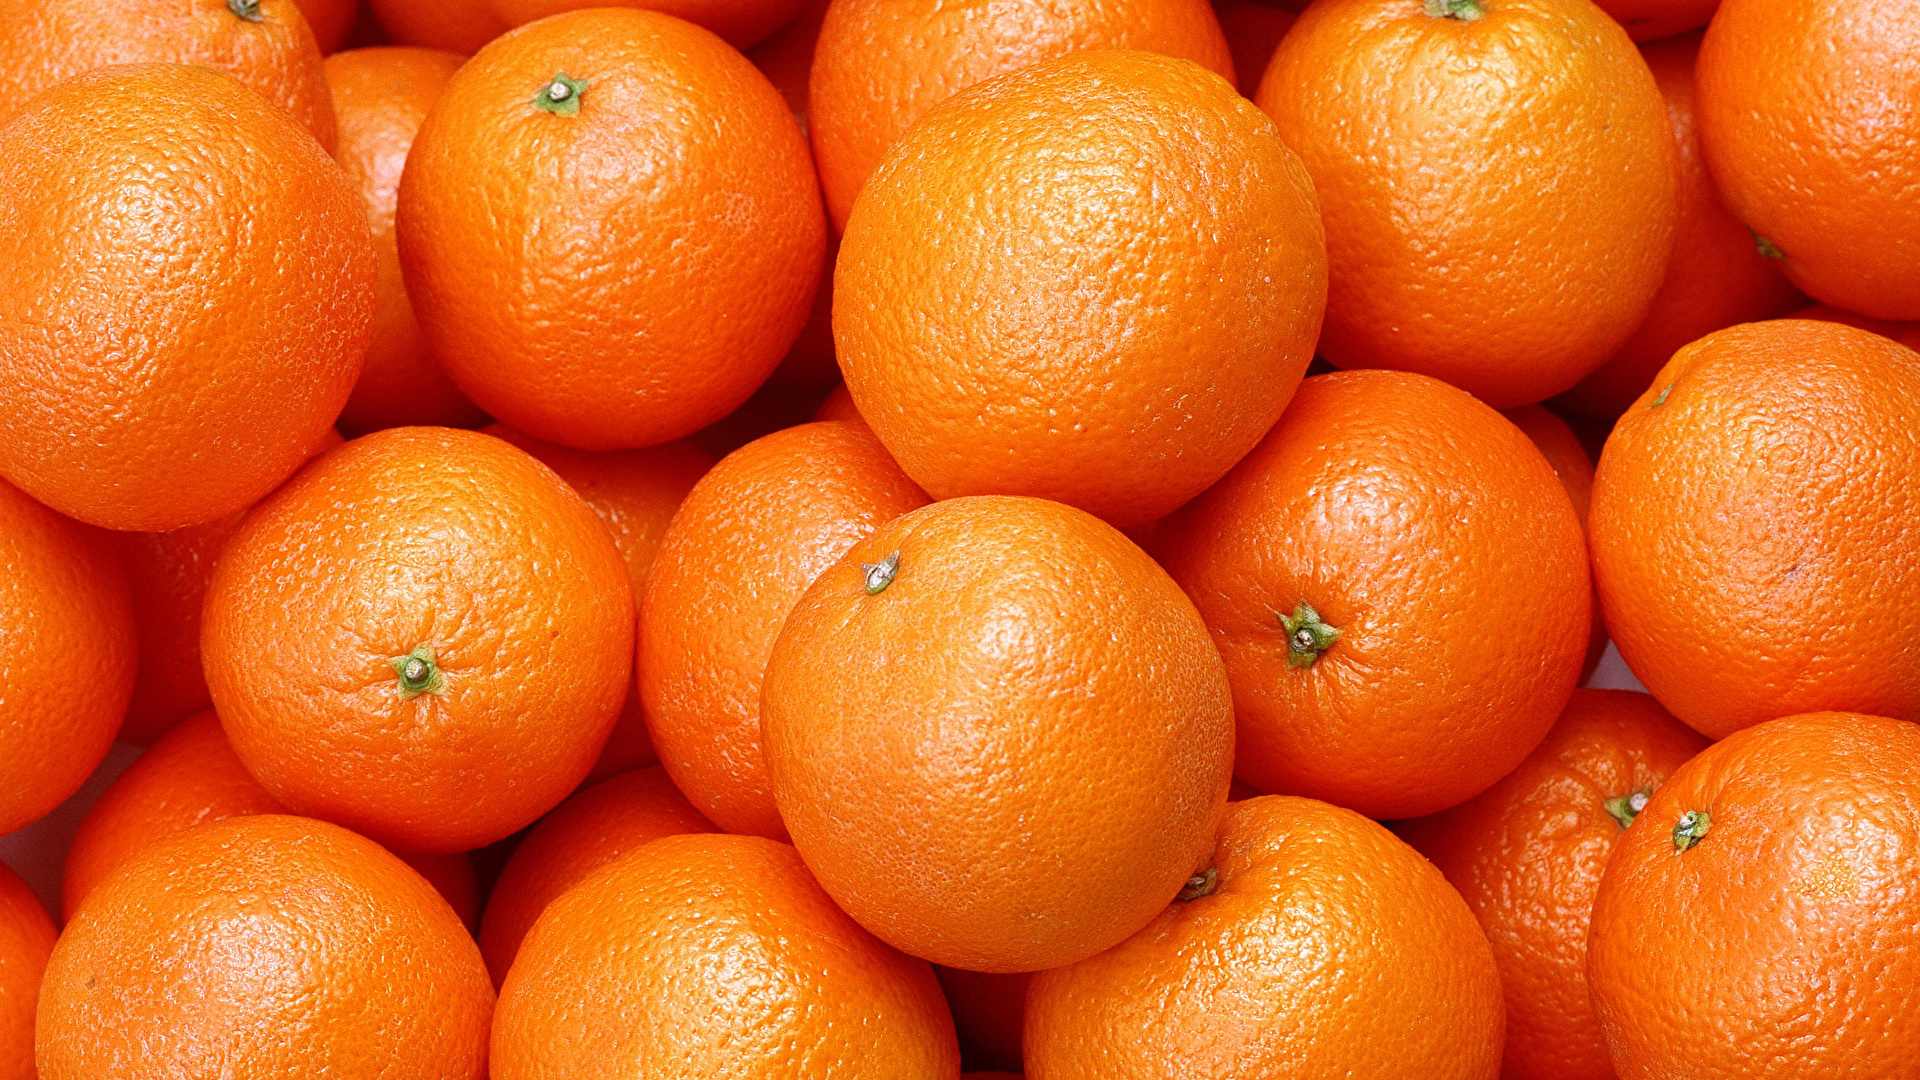 Wallpaper Texture Orange fruit Food Many Citrus 1920x1080 1920x1080